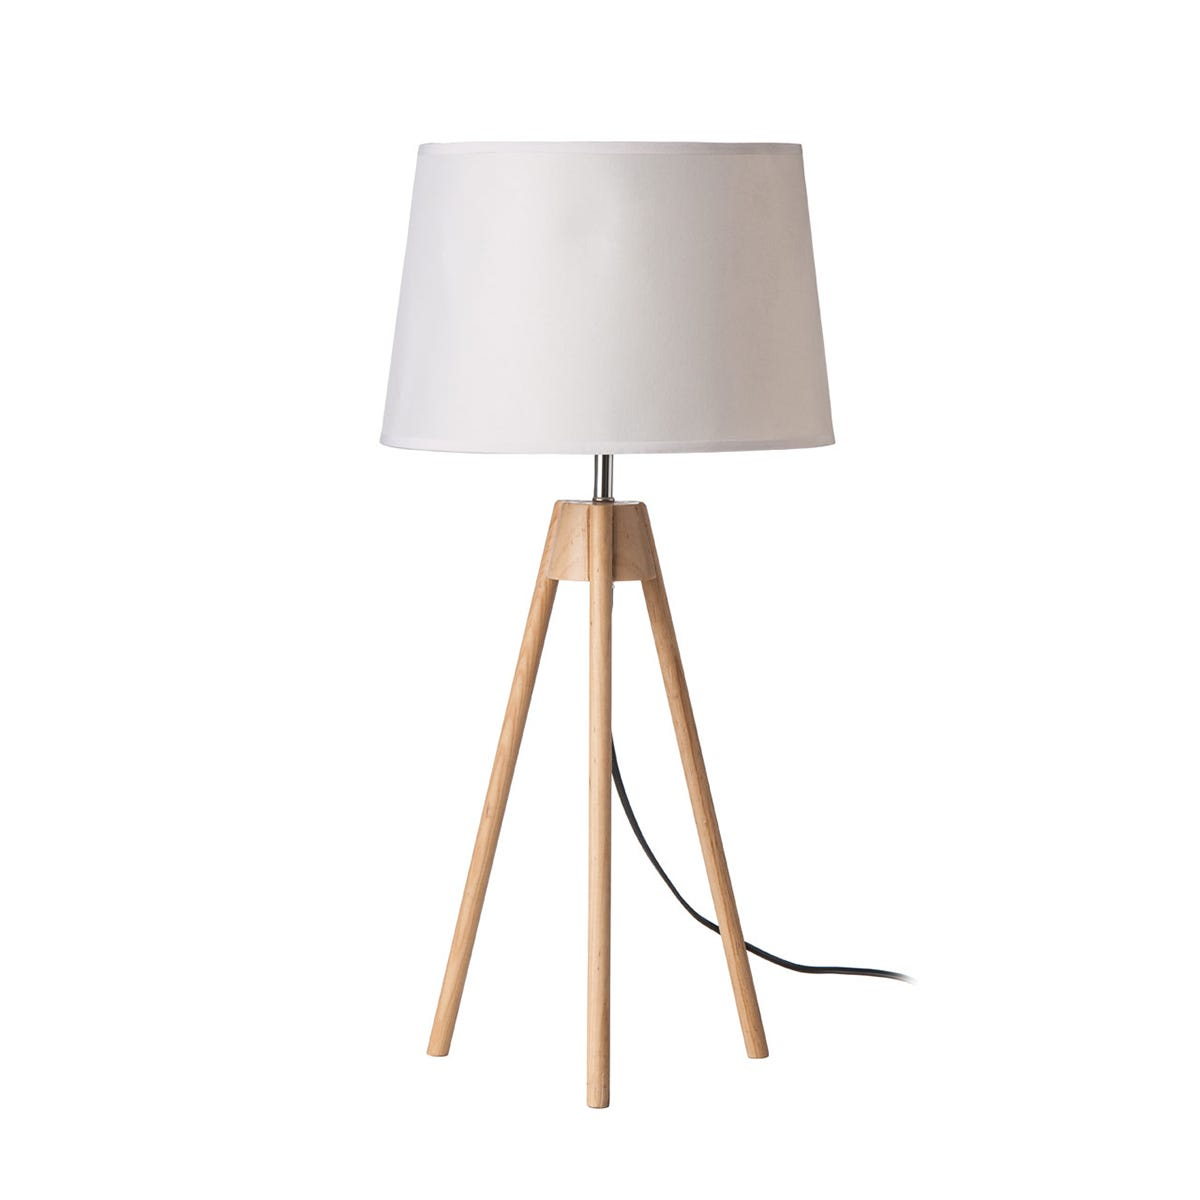 Premier Housewares Tripod Table Lamp with Light Wood Base & White Shade